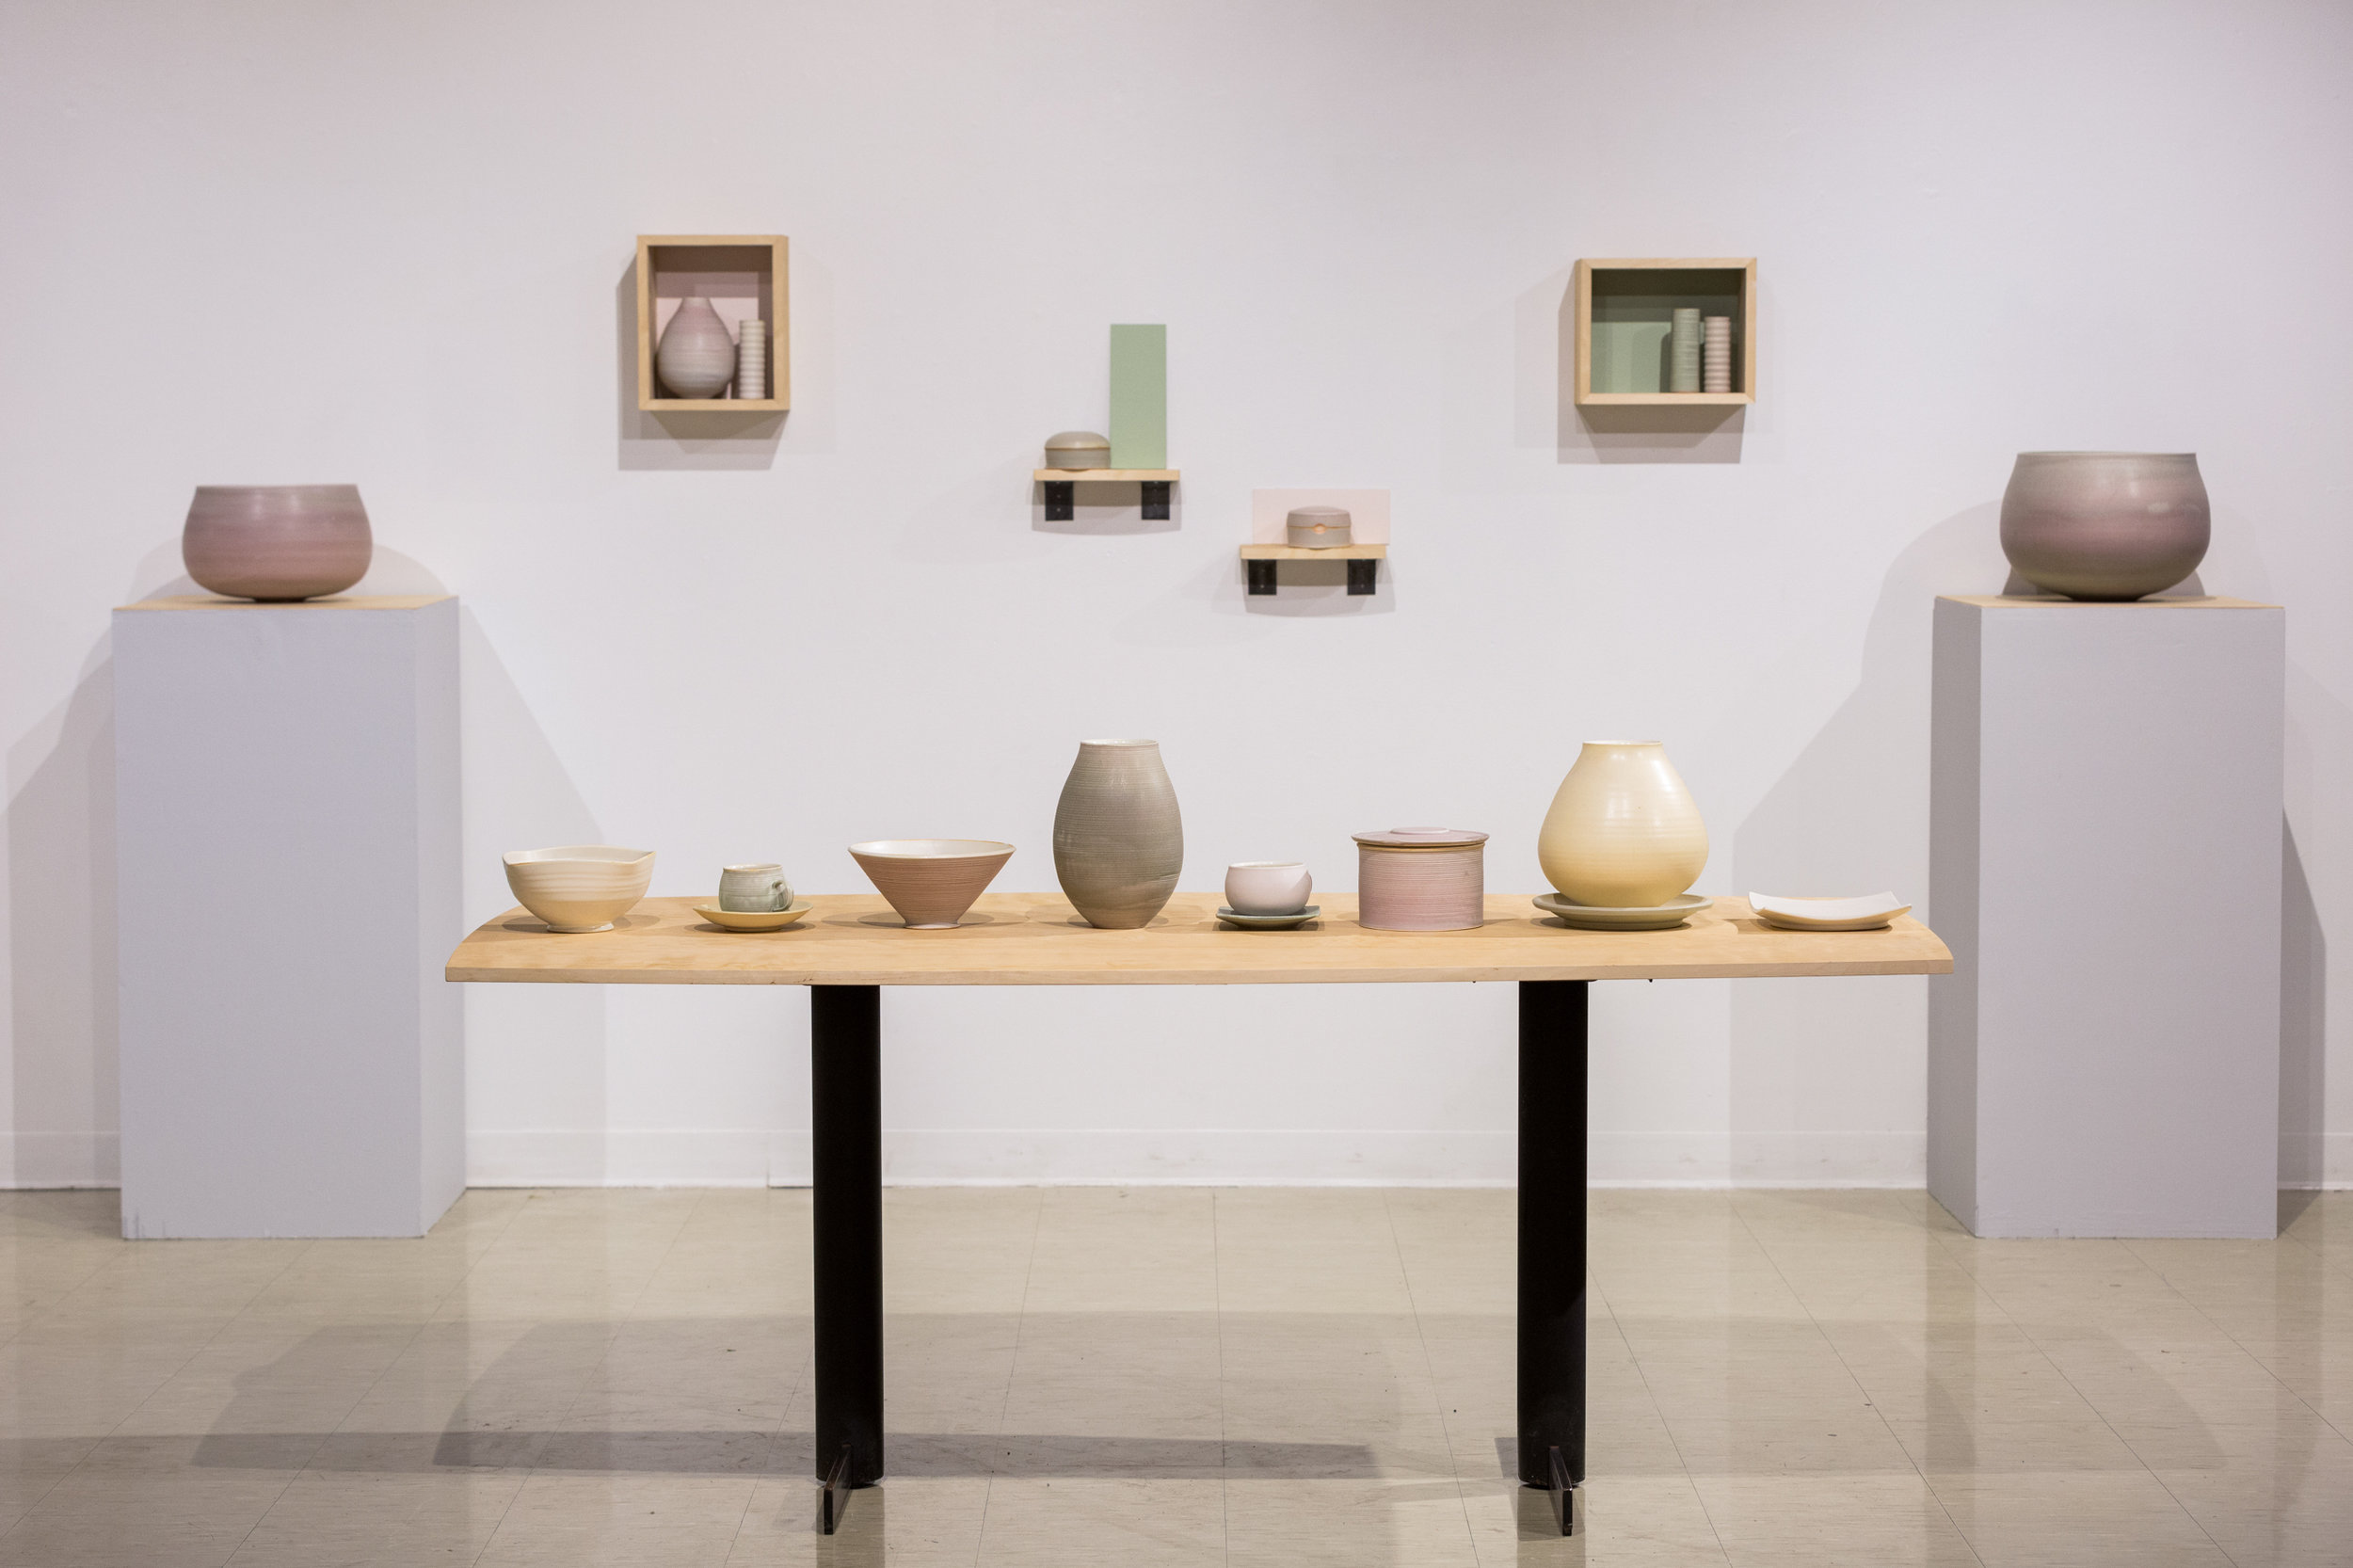 Installation  Cone 10 Reduction Porcelain Objects  Table 8' L x 4' W x 3' H  2016